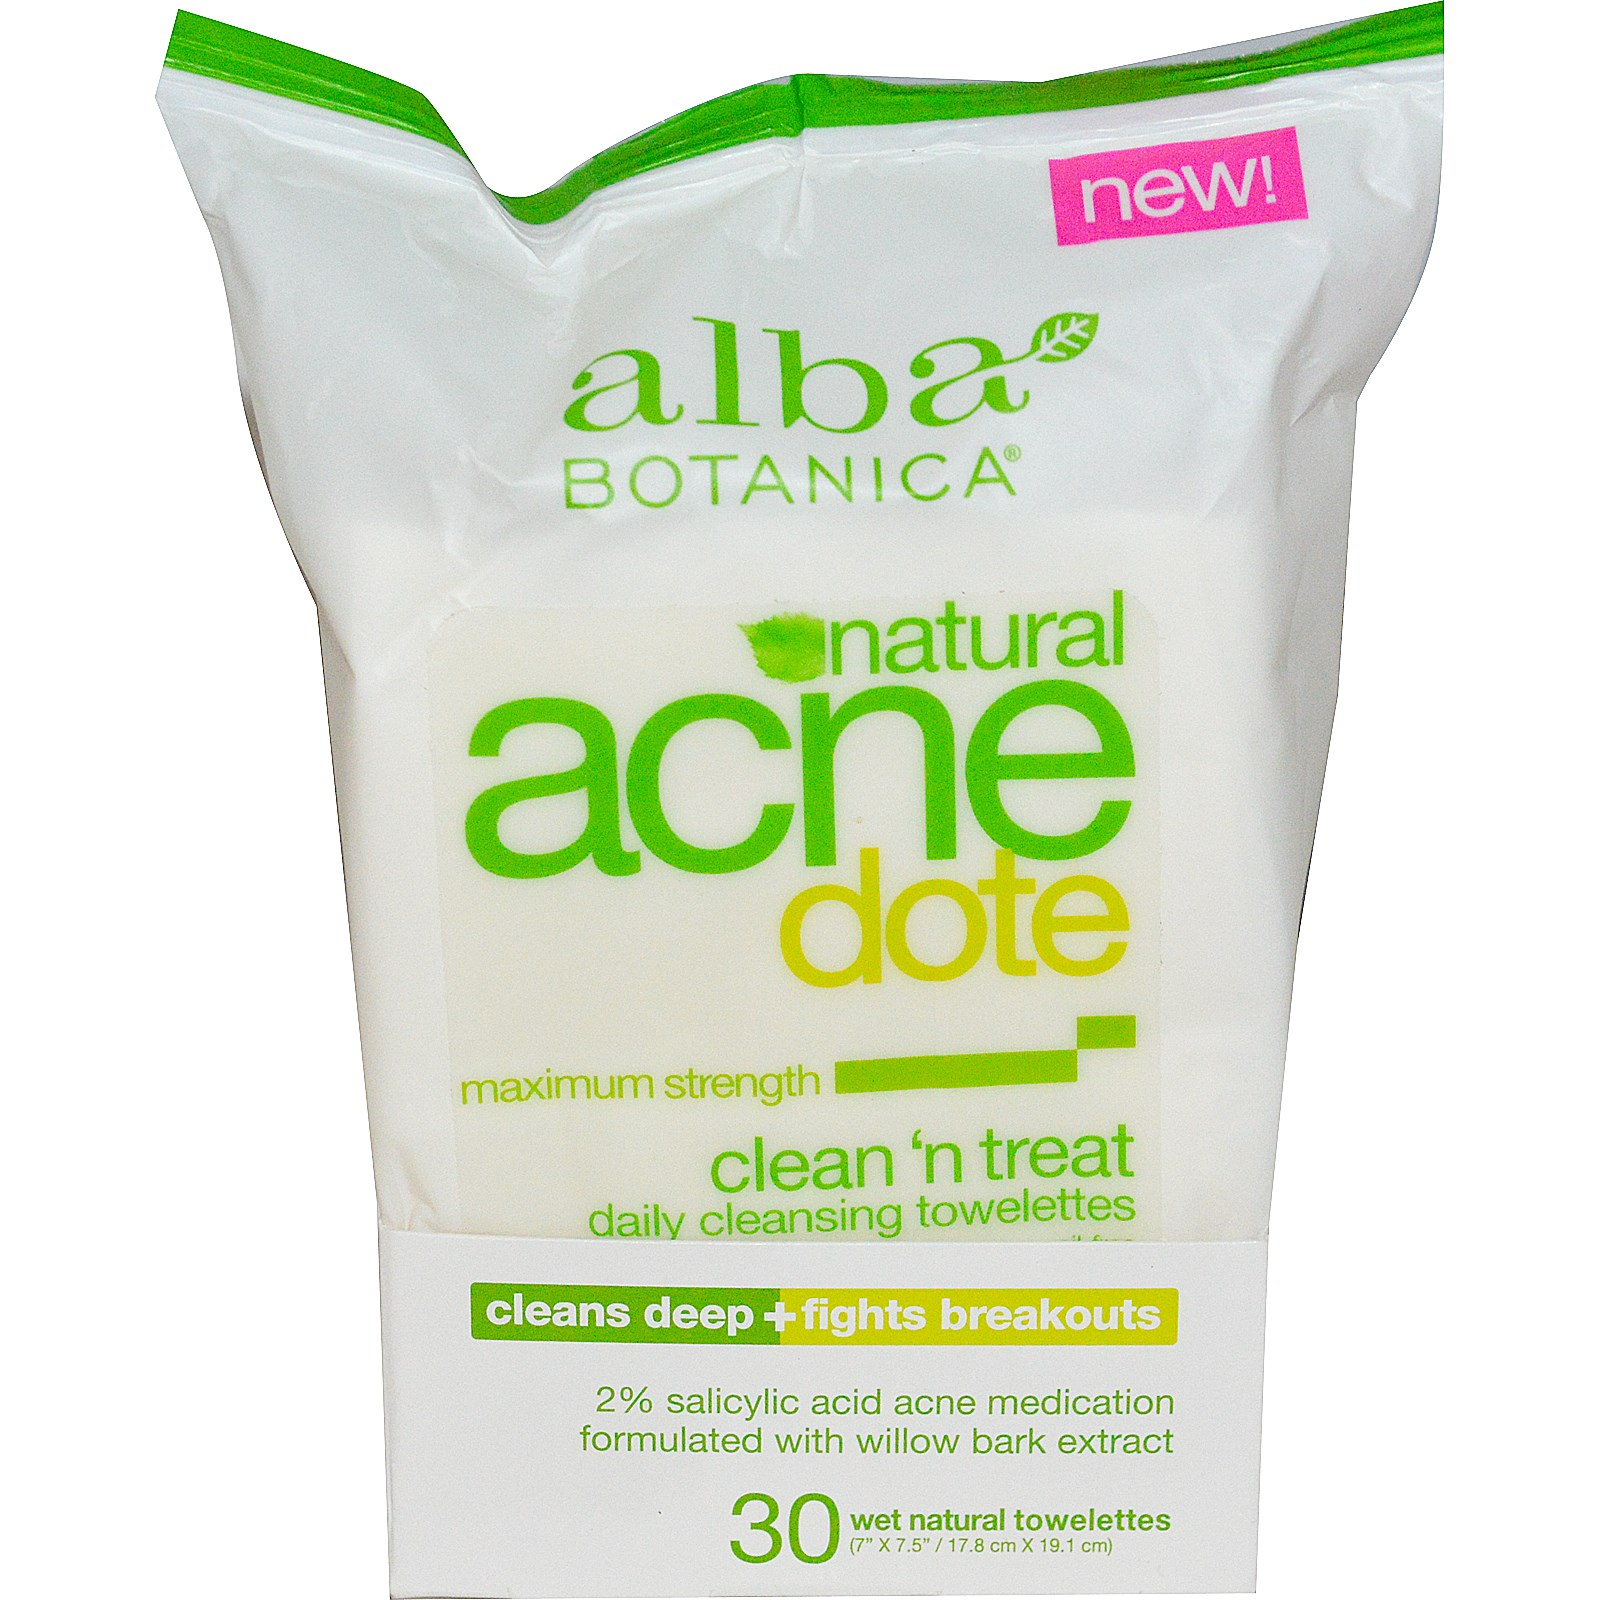 Alba Botanica Acnedote Clean n Treat Daily Cleansing Towelettes 30 ea (Pack of 6) 4 Pack - Freeman Facial Revealing Peel -Off Mask, Pomegranate, 6 oz